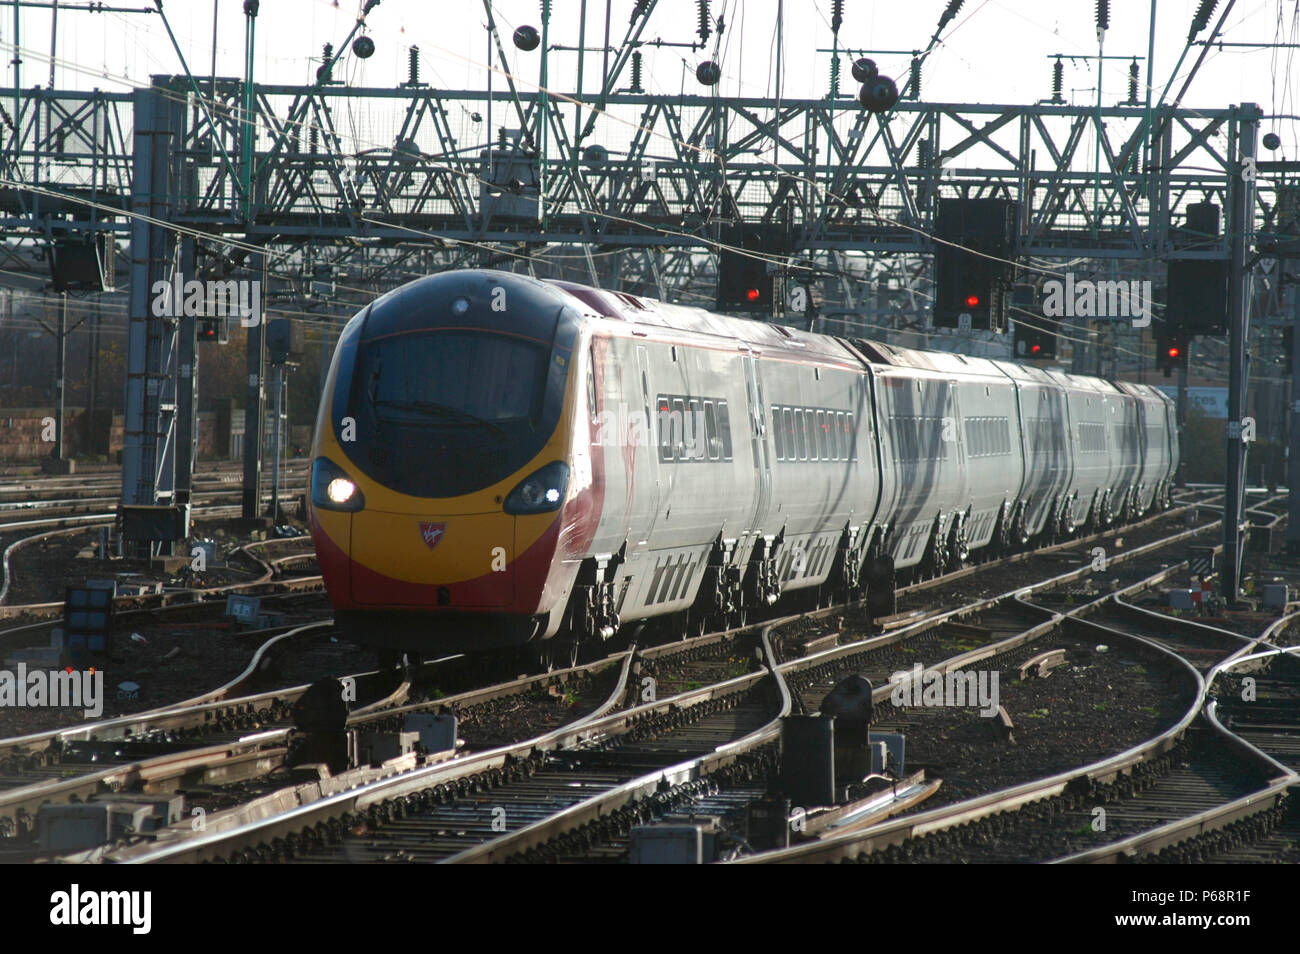 Virgin Trains Pendolino number 390.036 nears the end of its journey from Euston as it approaches Glasgow Central. November 2004. - Stock Image